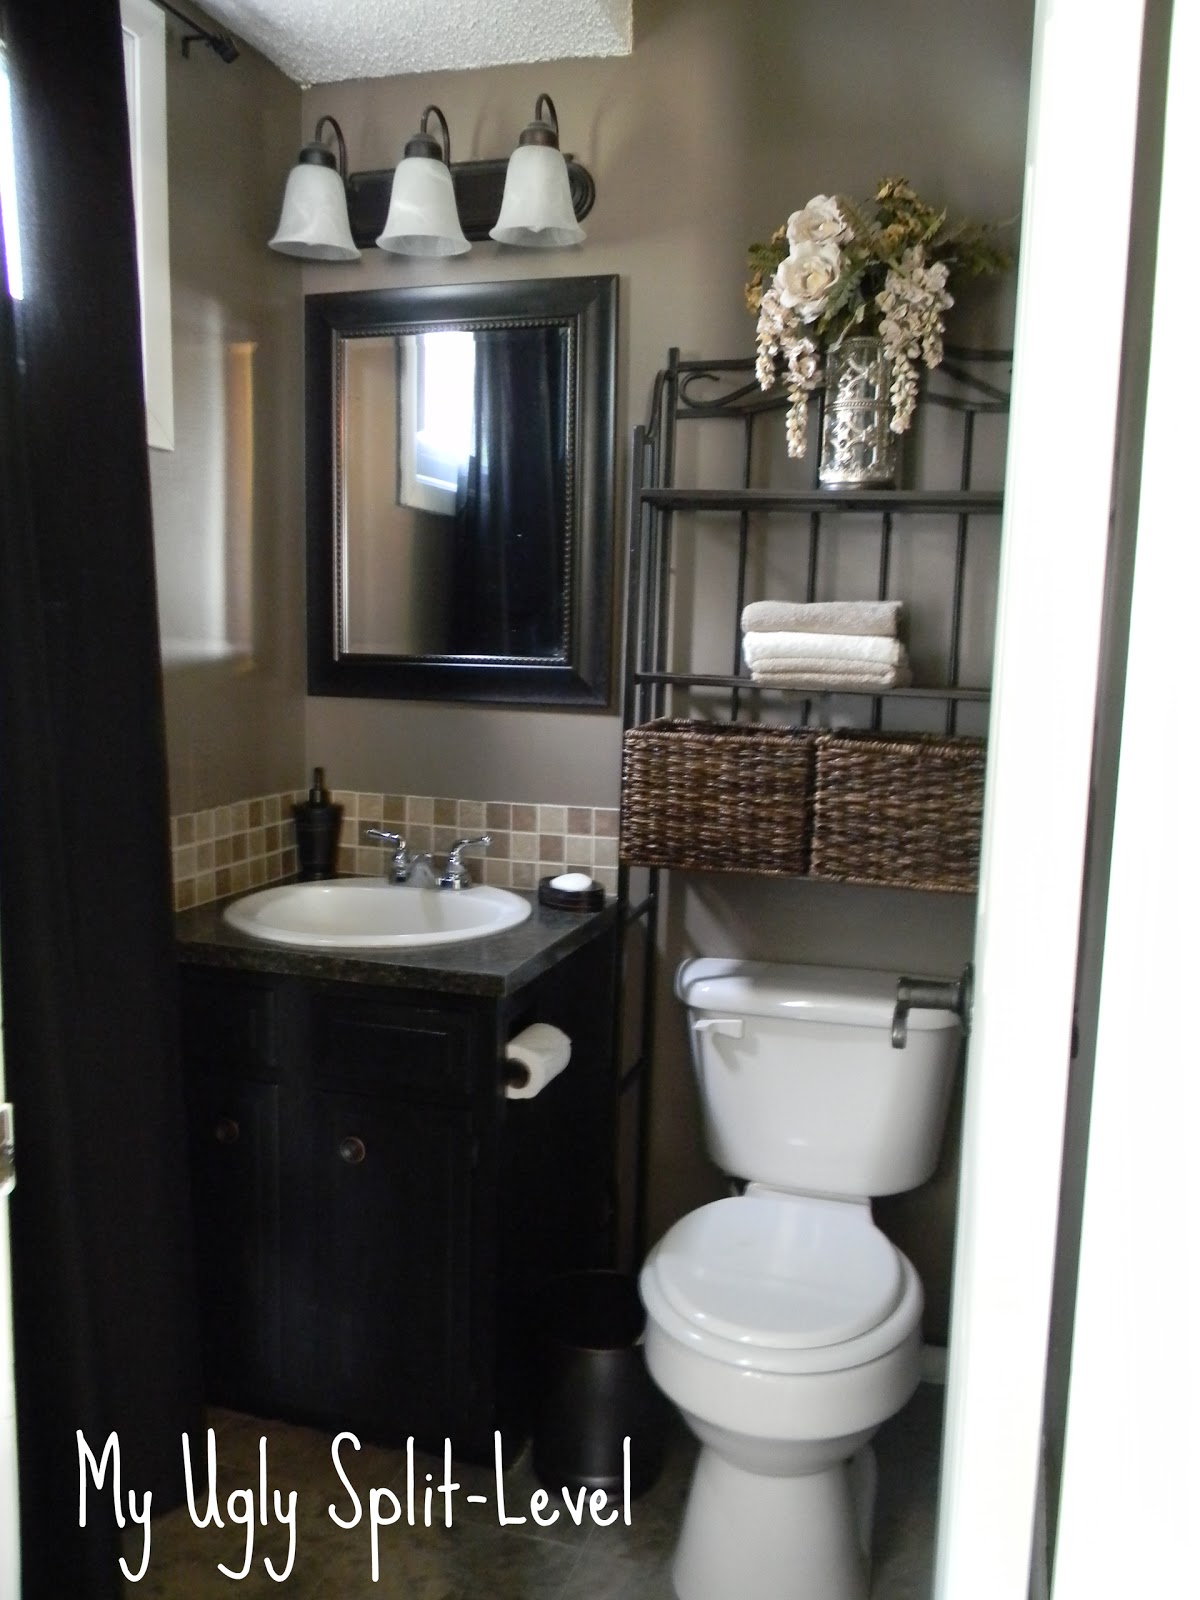 My ugly split level the back bathroom Small half bathroom design ideas